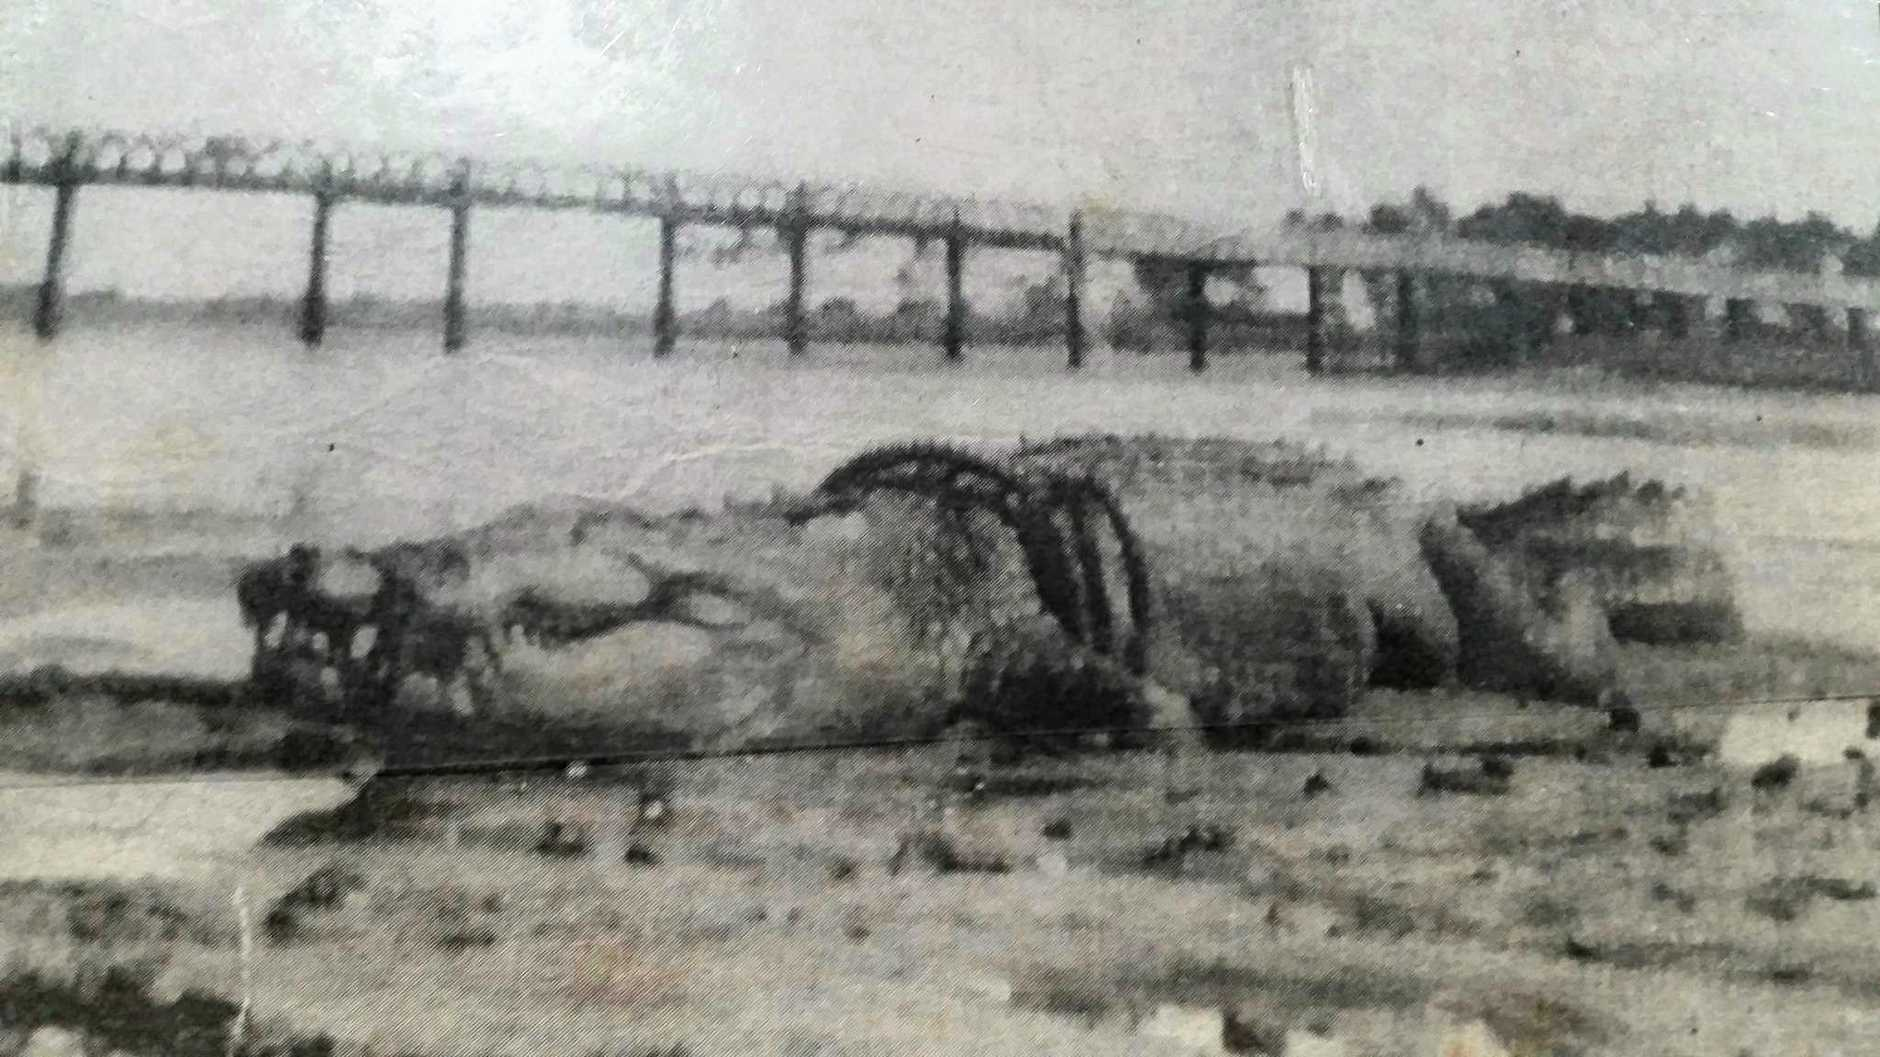 Does this historic photograph show the monster  9.7m (32 foot) crocodile reportedly shot from the Leichardt Hotel in Mackay on an unknown date? The jury's still out.